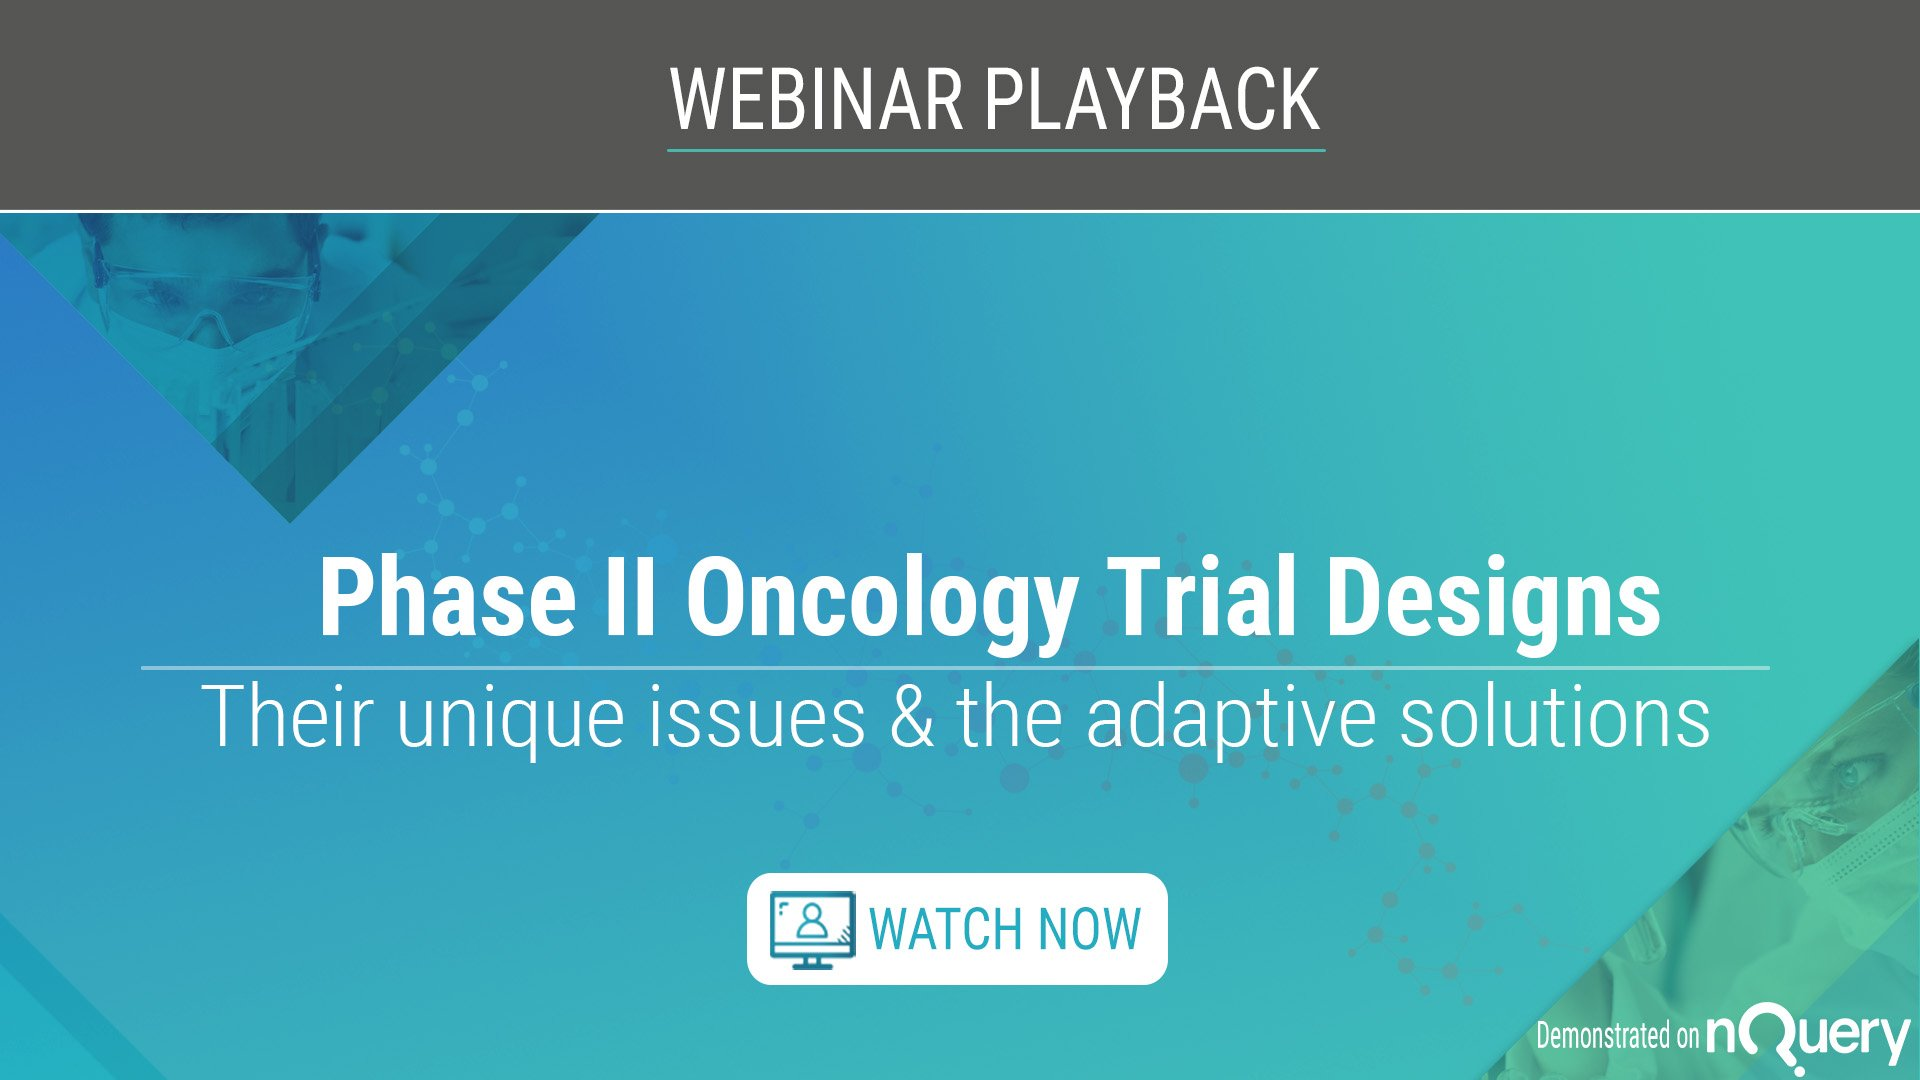 Phase II Oncology Trial Designs